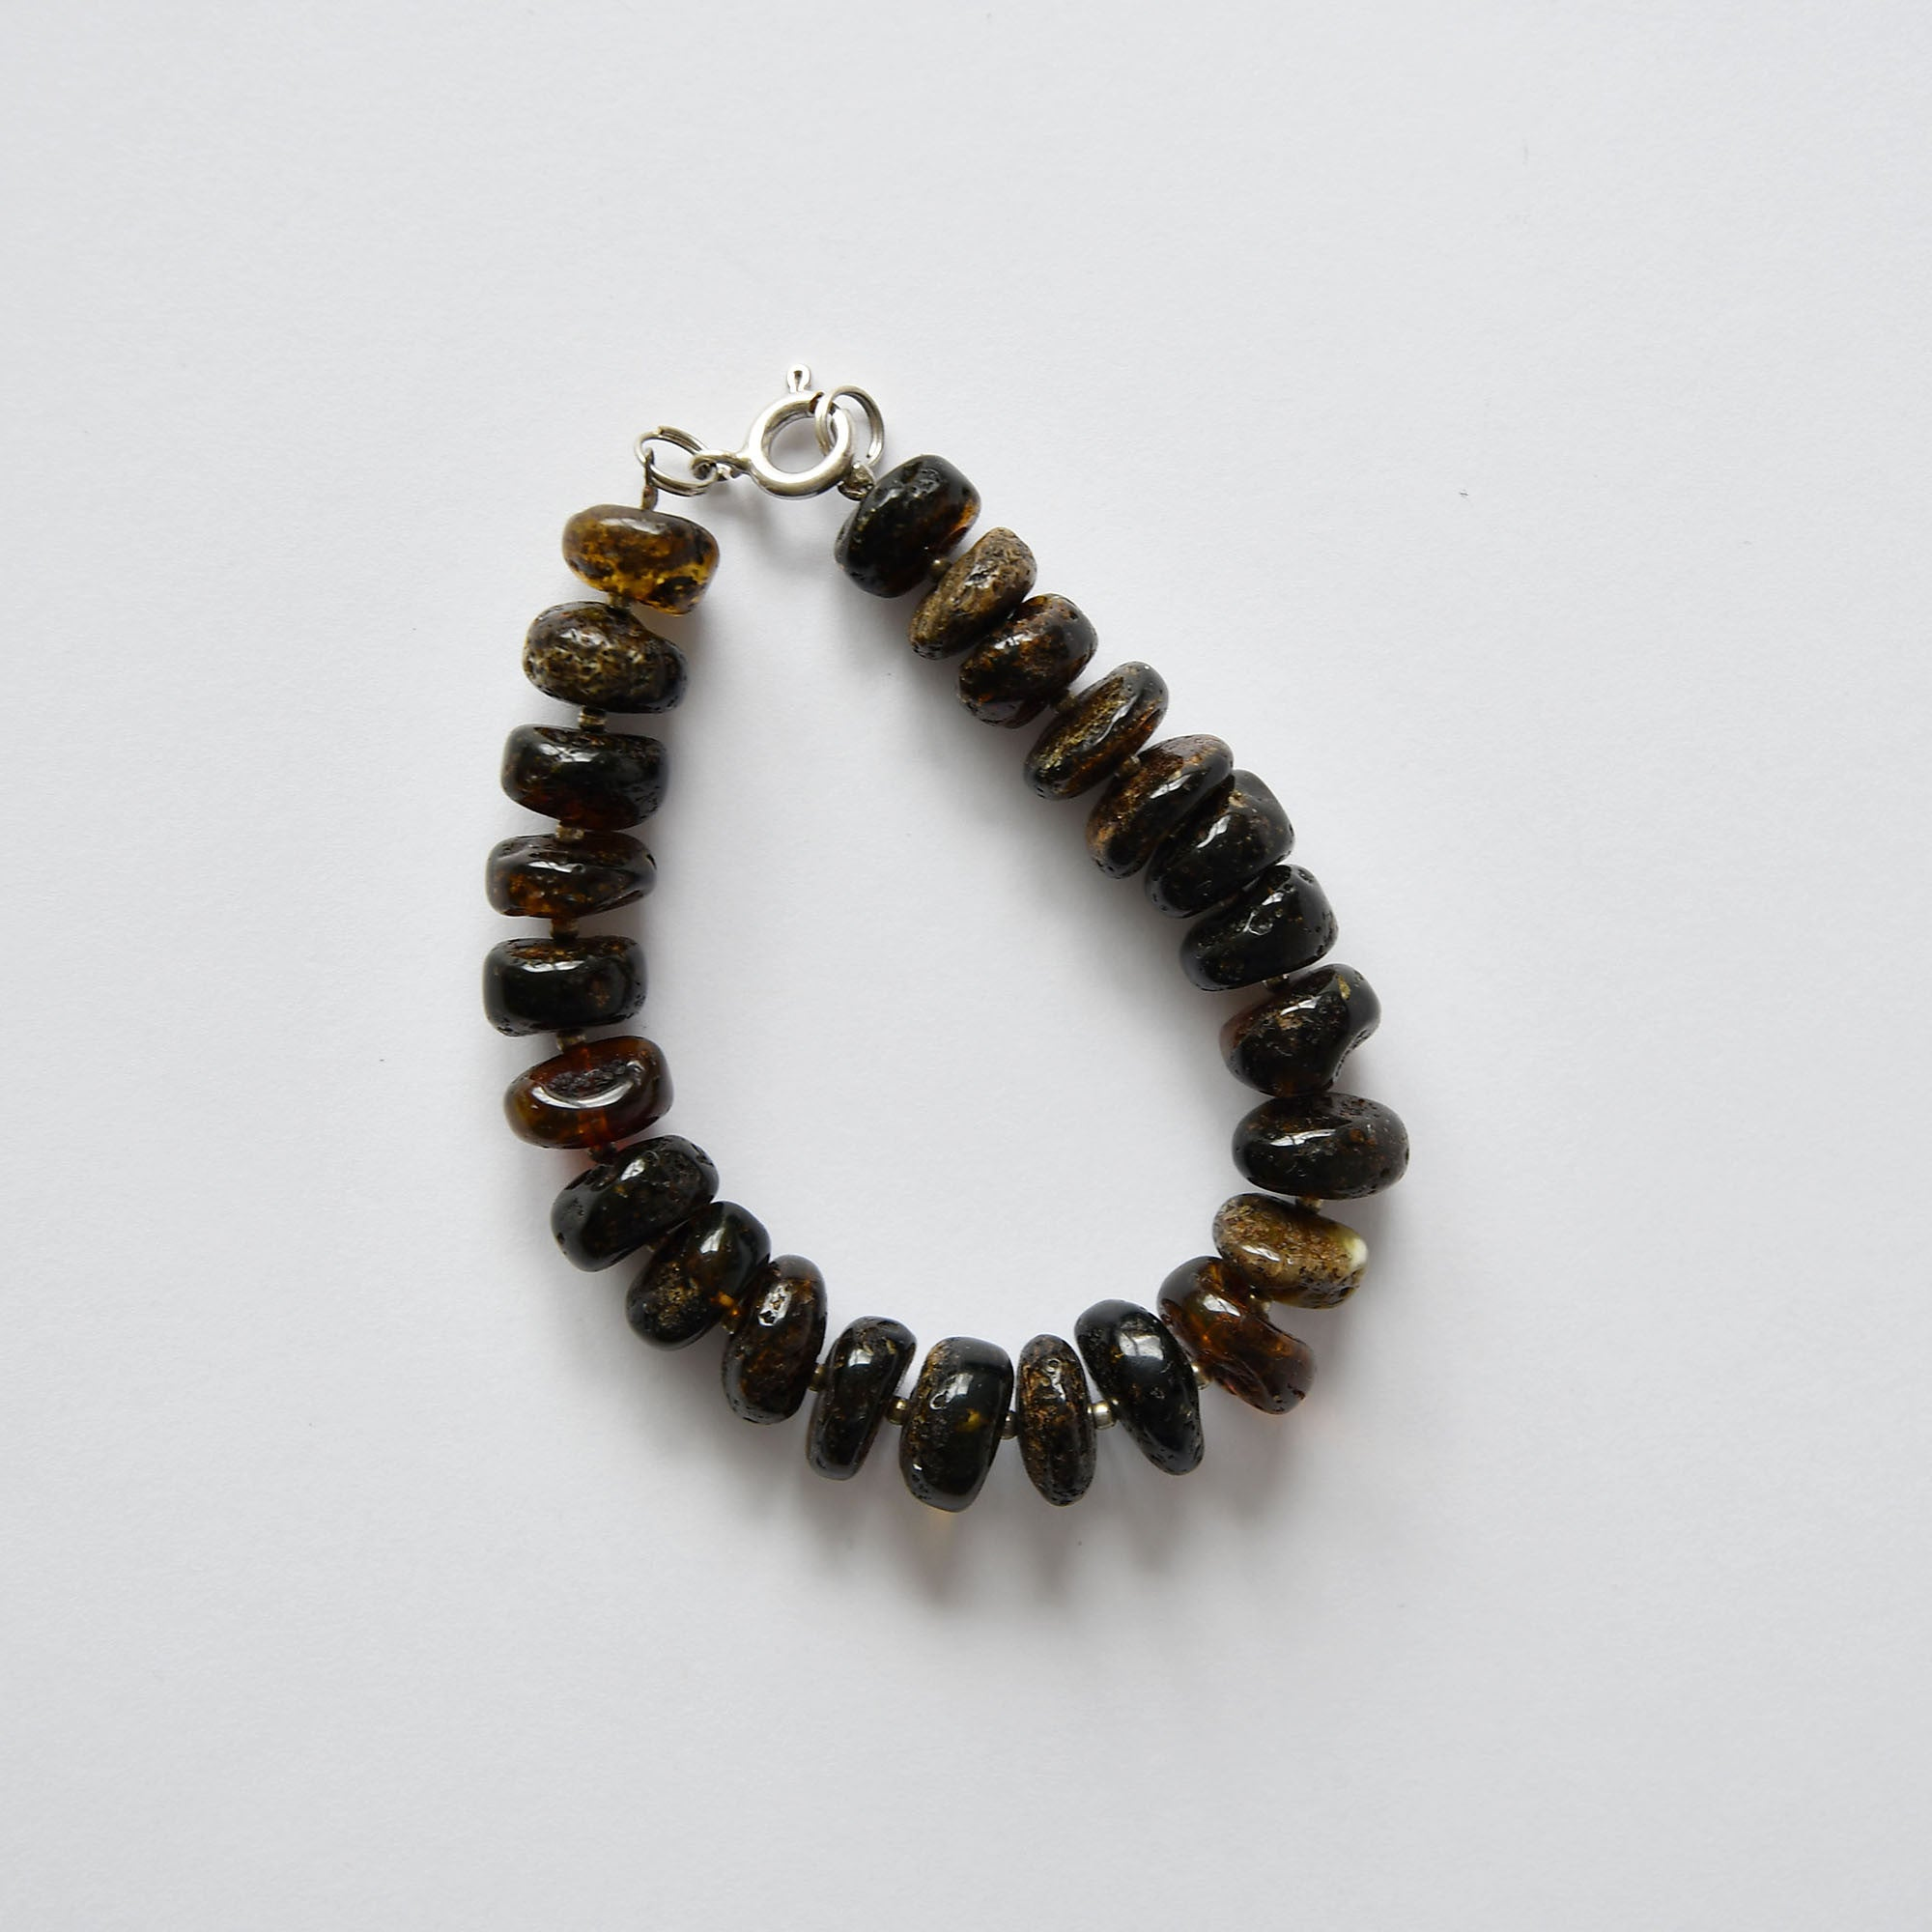 Black amber bracelet with a fastening